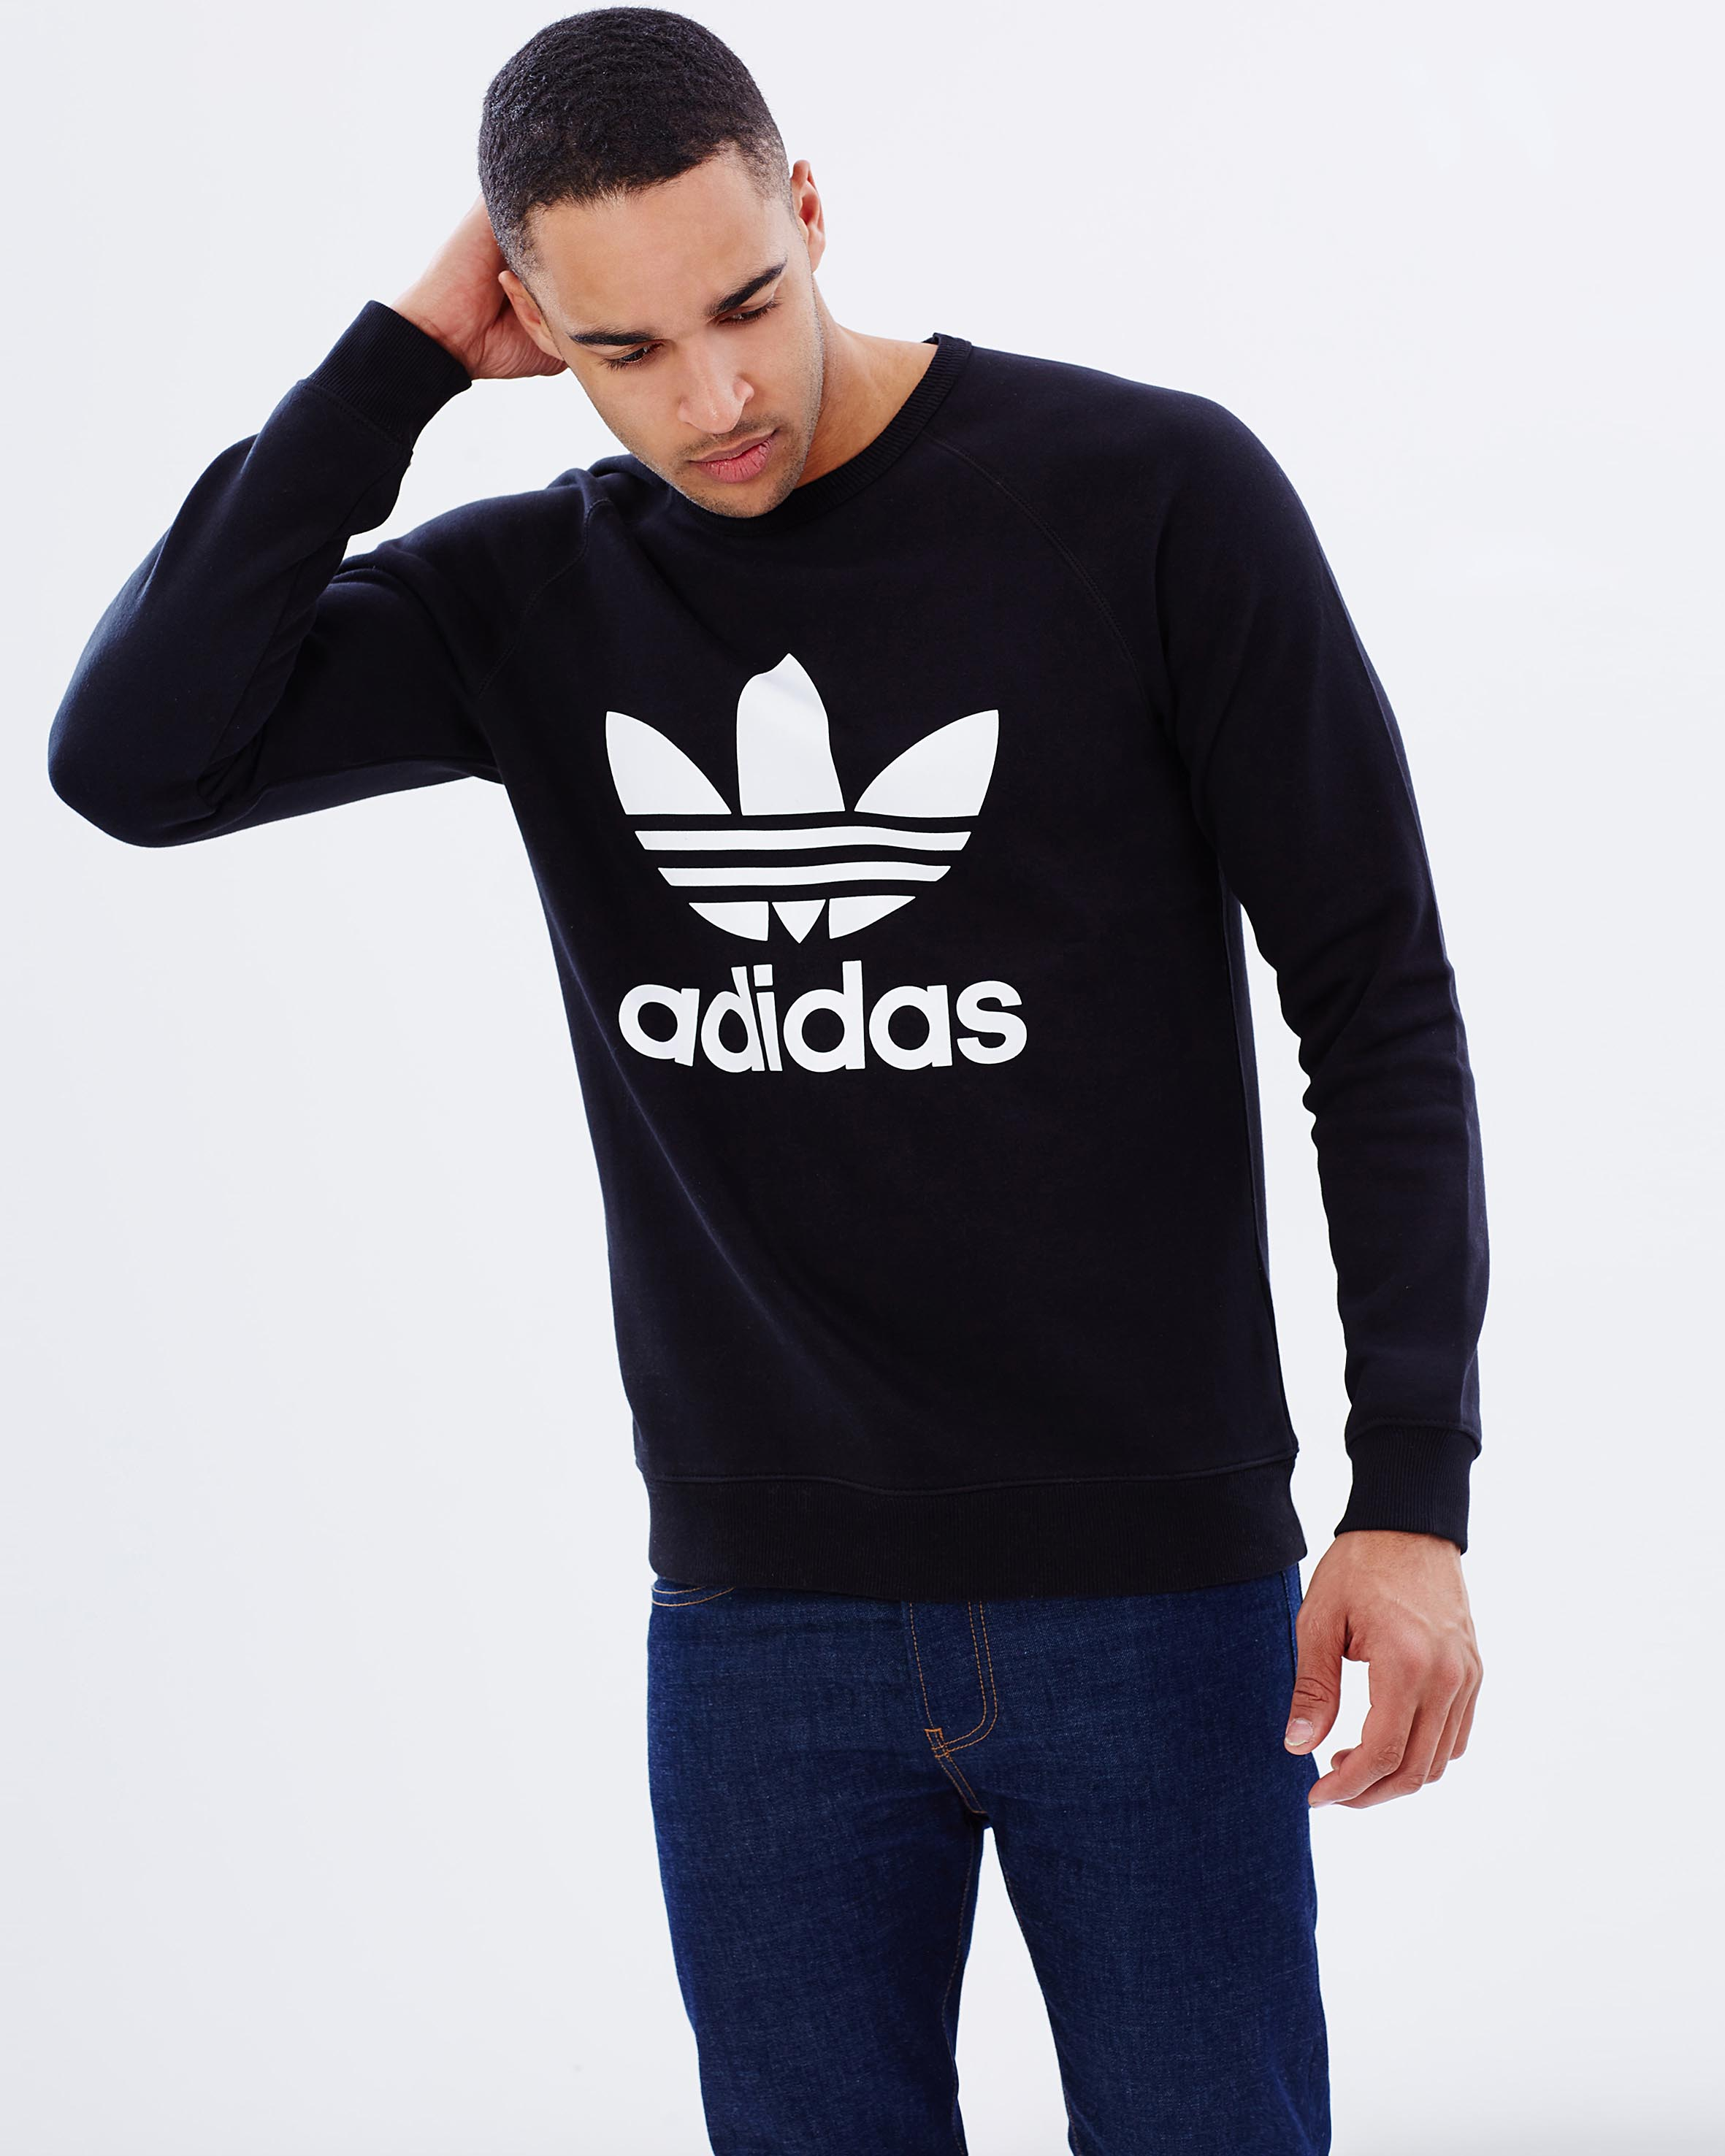 adidas original online shopping